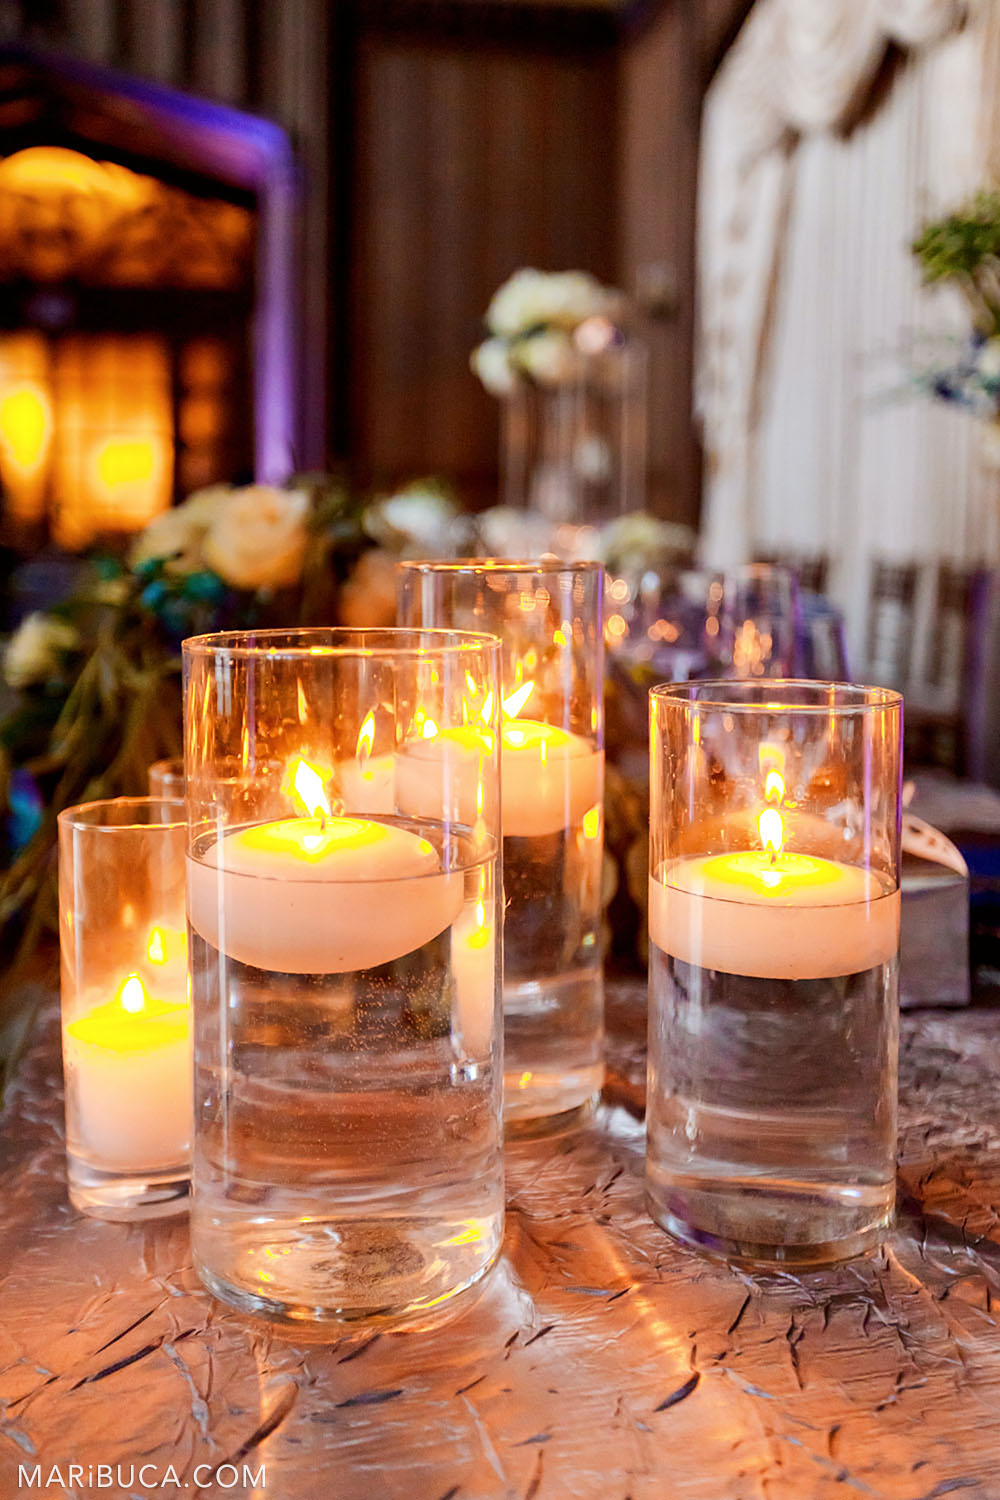 Wedding decoration: glass glasses of water are lit floating candles against the background of orange and purple lights in the Great Hall, Kohl Mansion, Burlingame